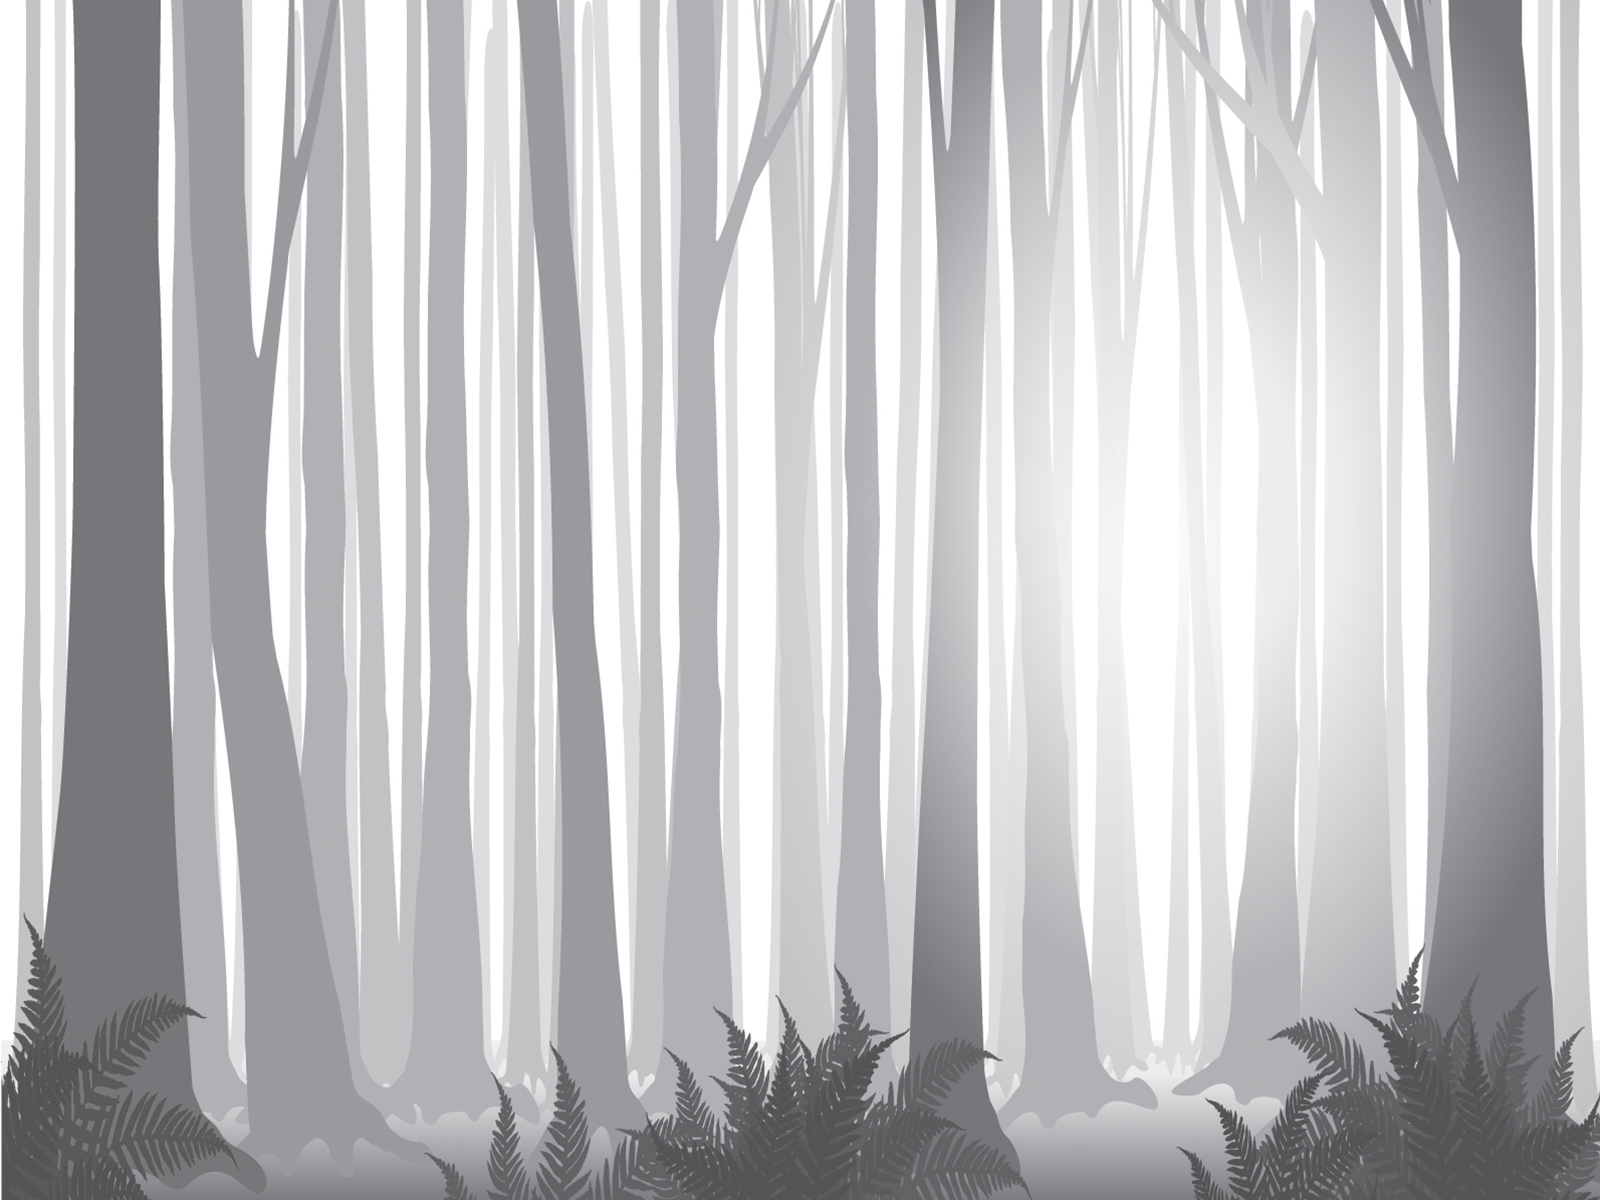 Free Cute Fall Wallpapers Foggy Forest Powerpoint Templates Black Nature White